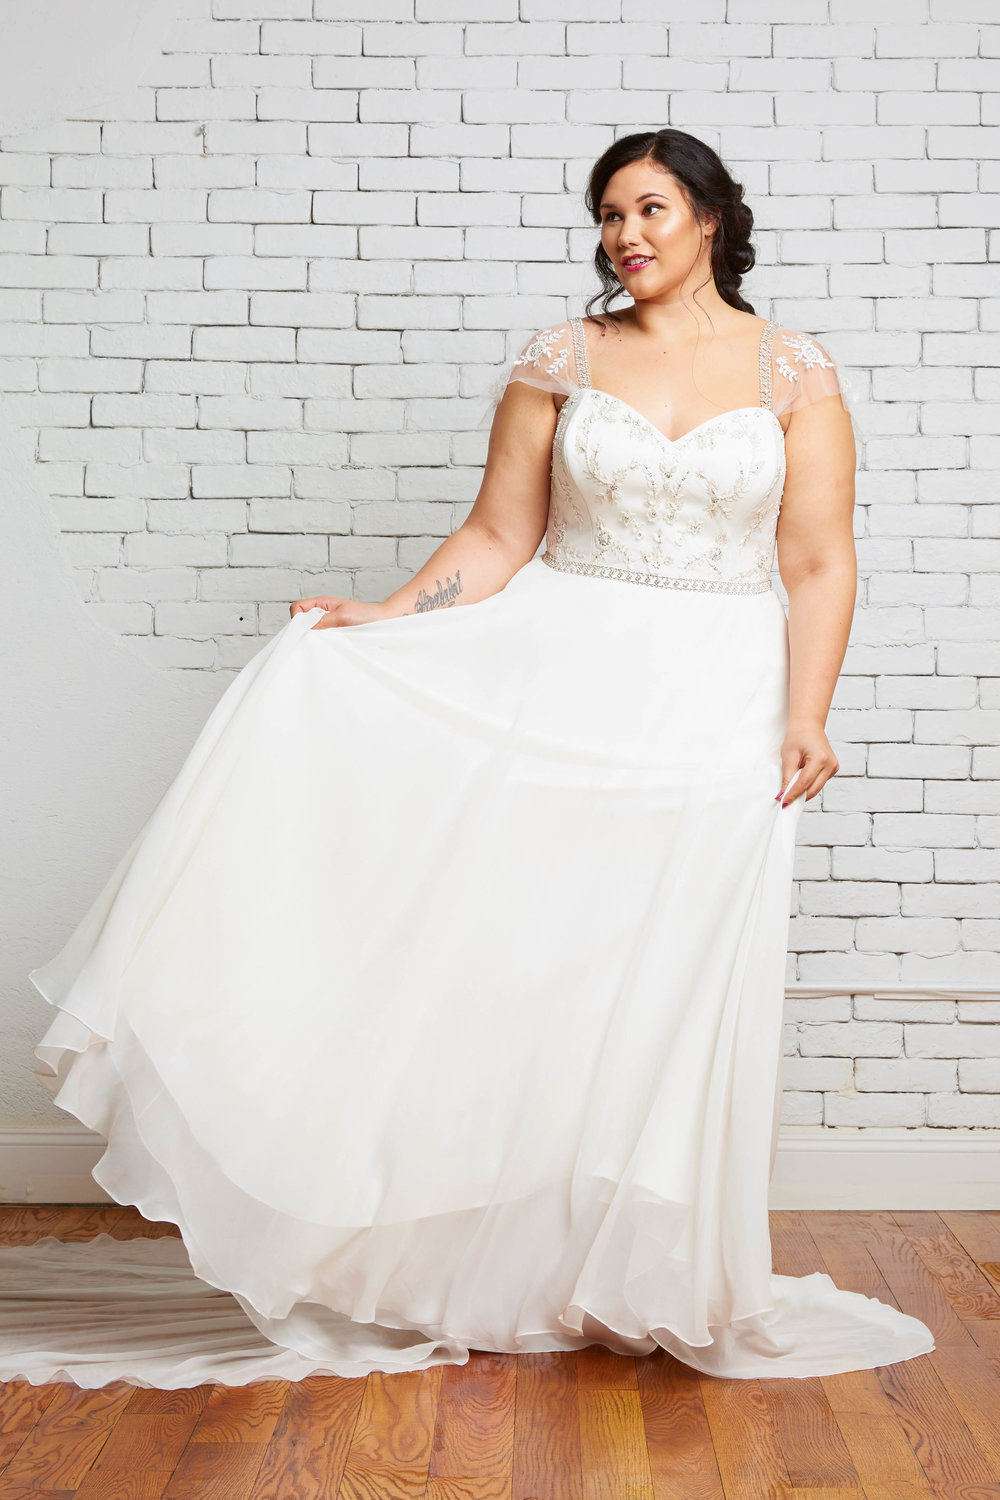 savannah-bridal-shop-ivory-and-beau-bridal-boutique-plus-size-trunk-show-plus-size-wedding-dresses-rebecca-schoneveld-trunk-show-4.jpg